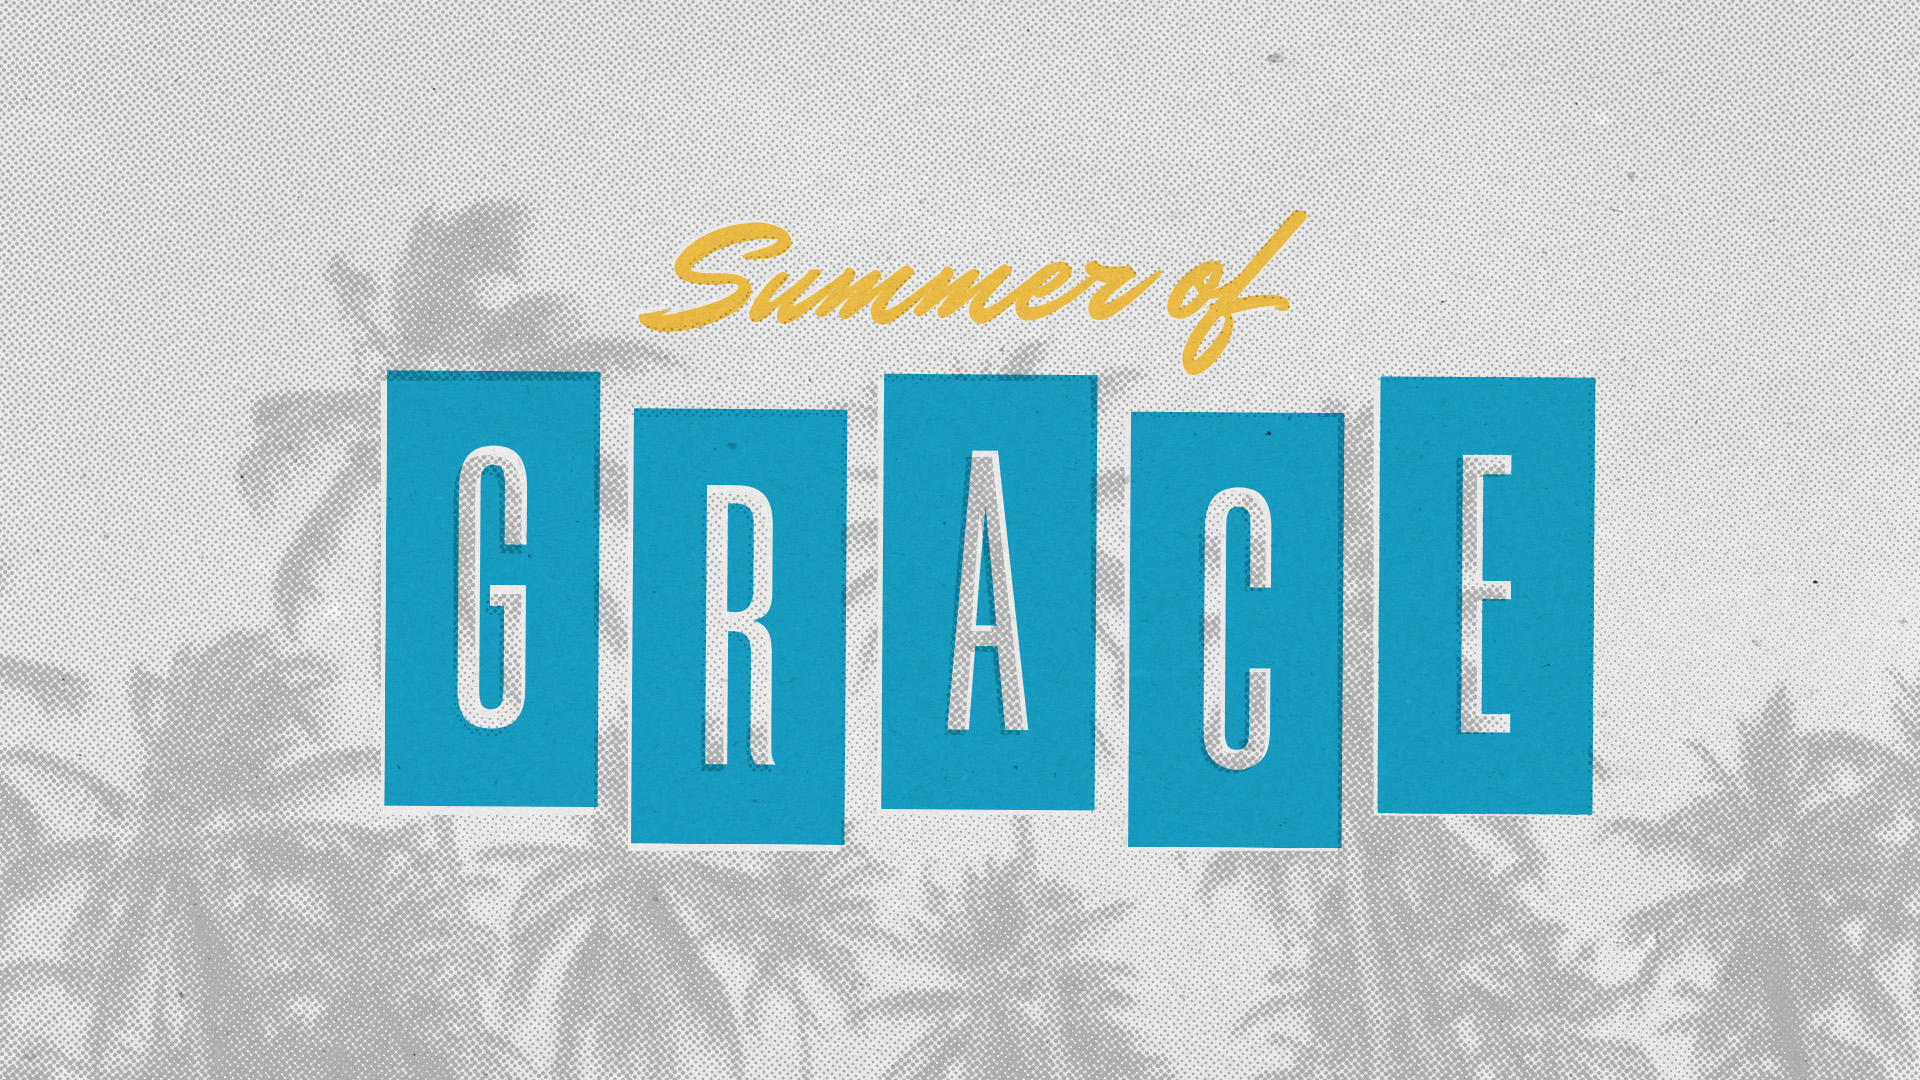 06.30.19 – grace for the needy – brad dunlap